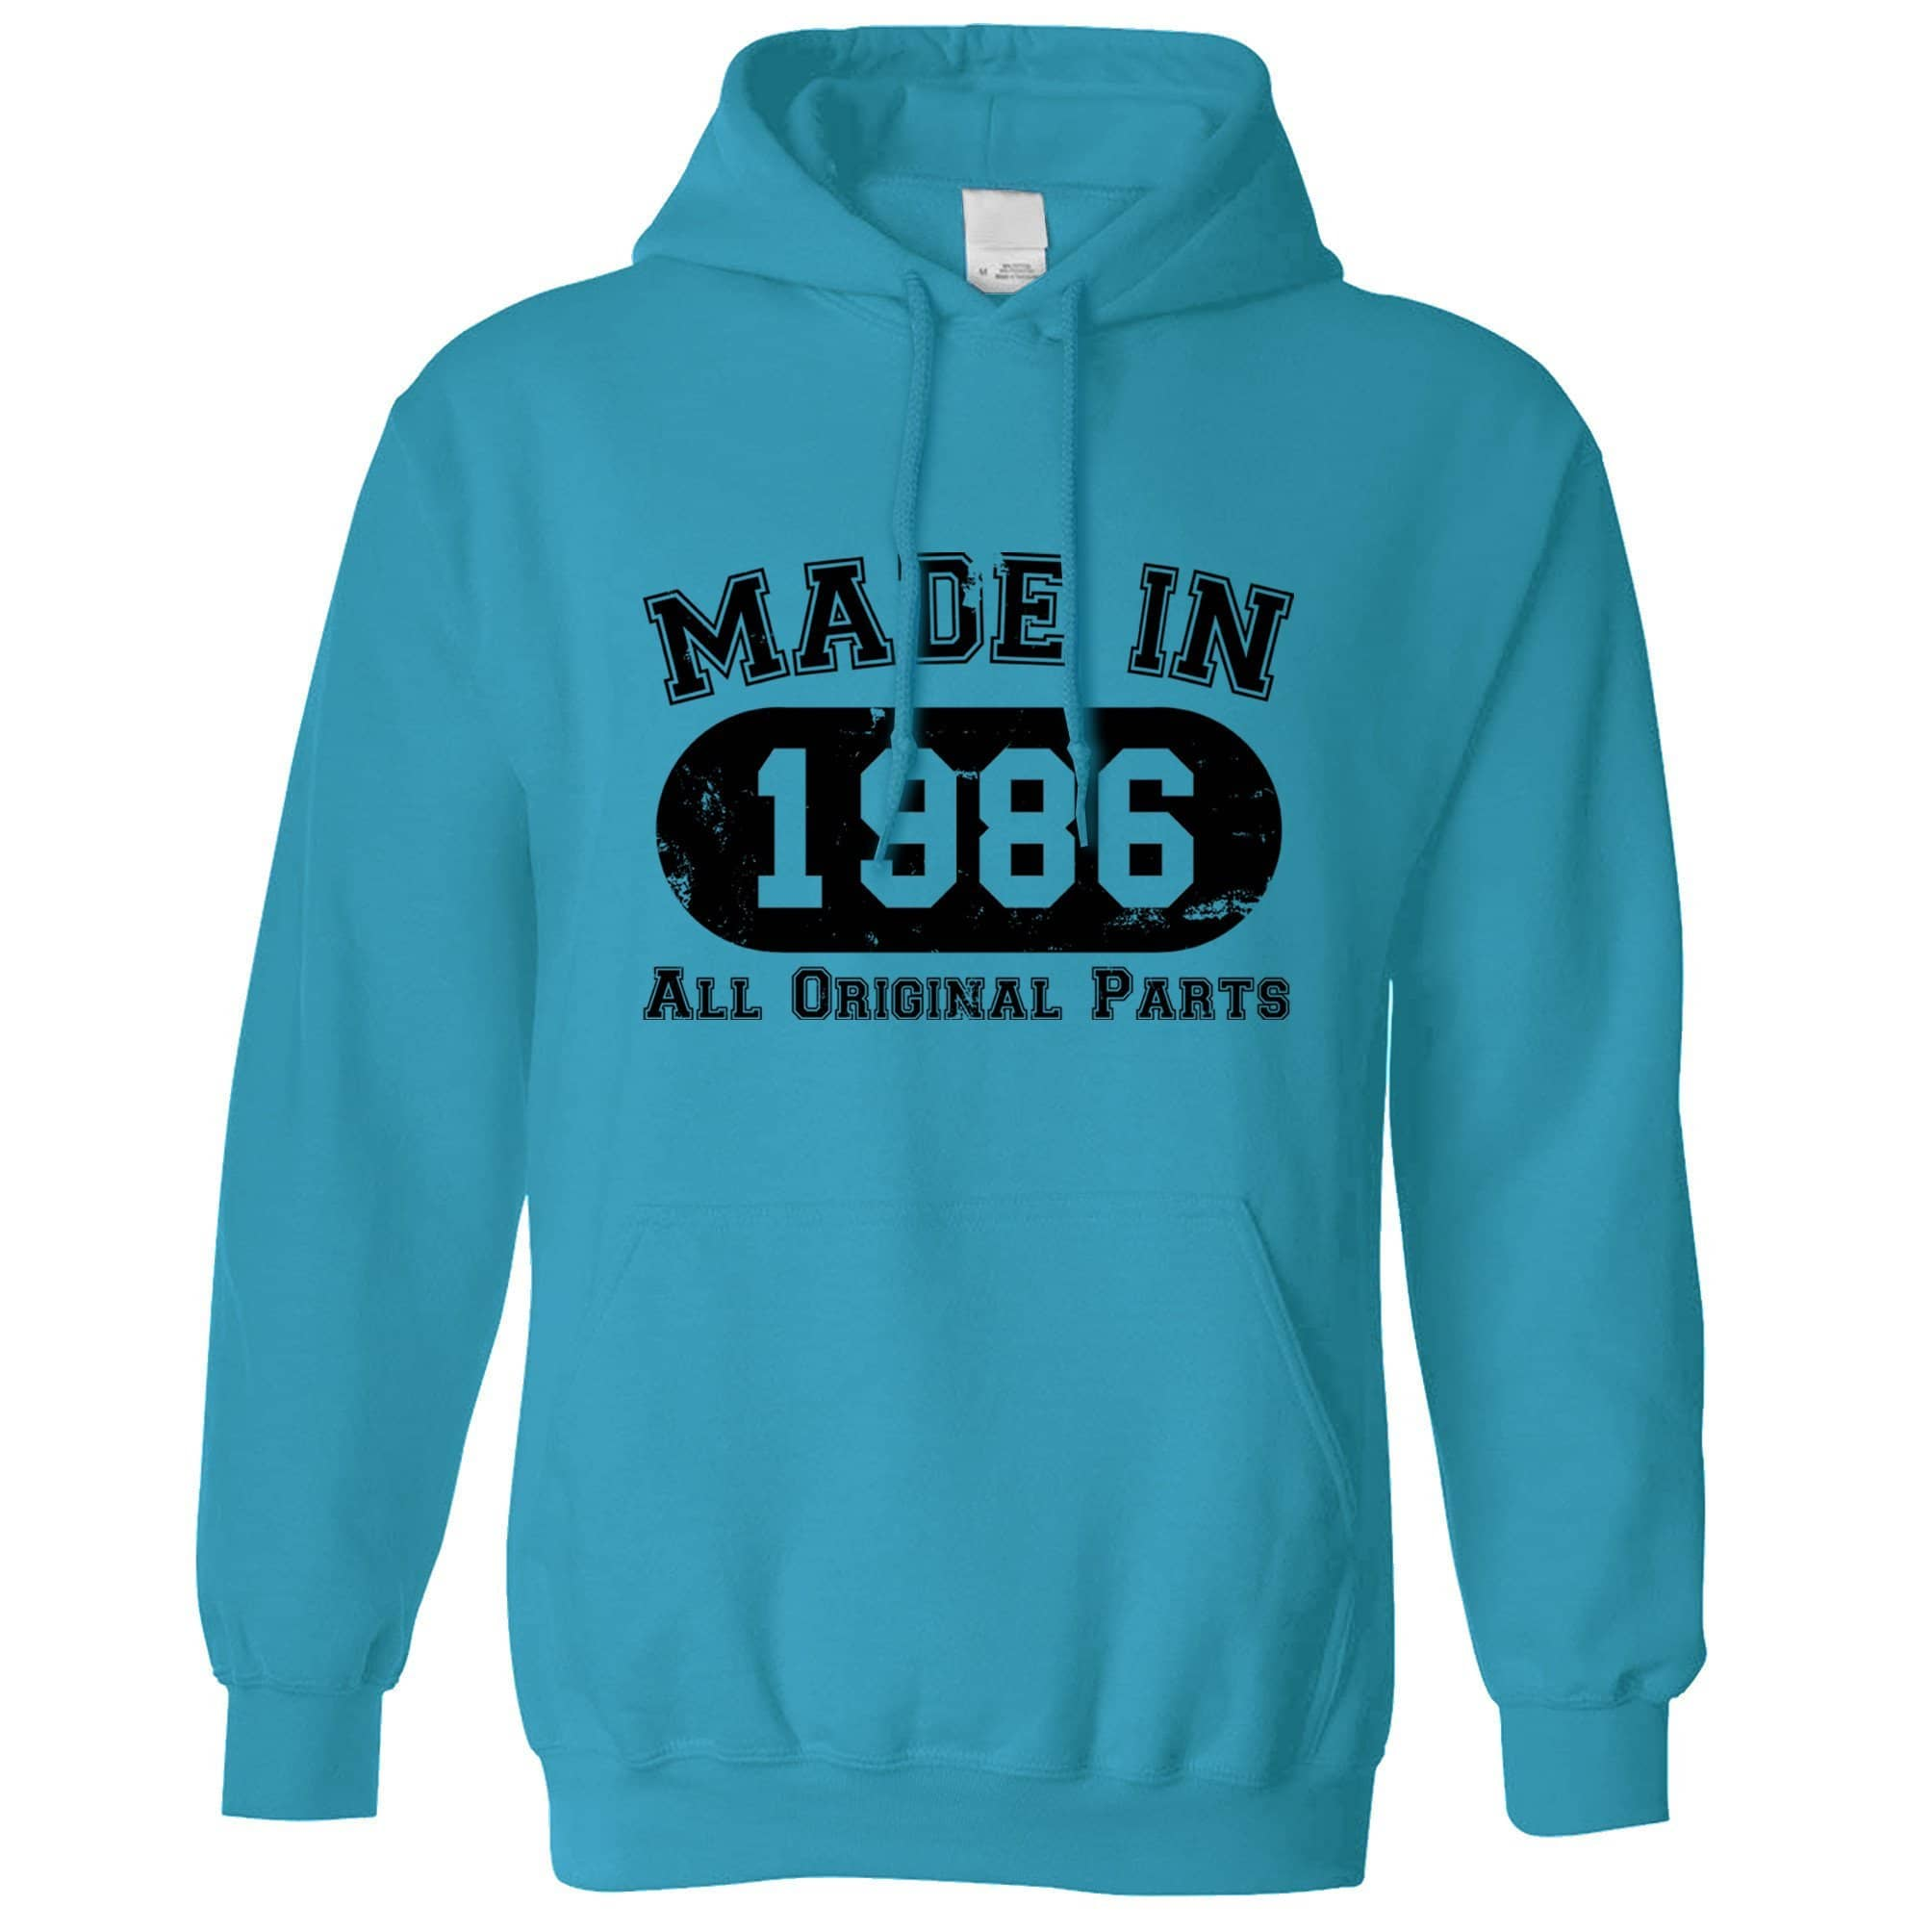 Made in 1986 All Original Parts Hoodie [Distressed]